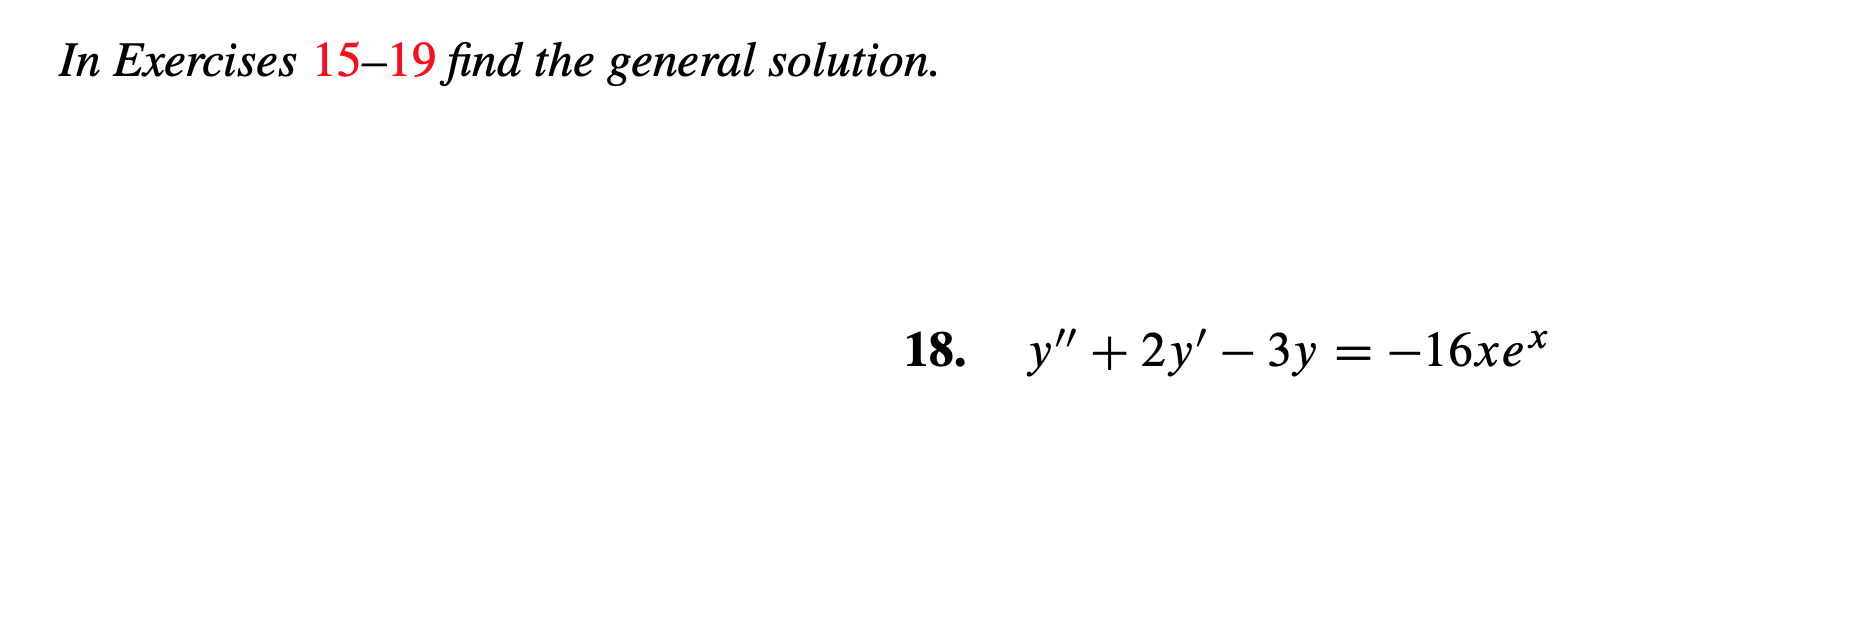 "In Exercises 15-19 find the general solution. у""+2y' - Зу %3D -16xe"